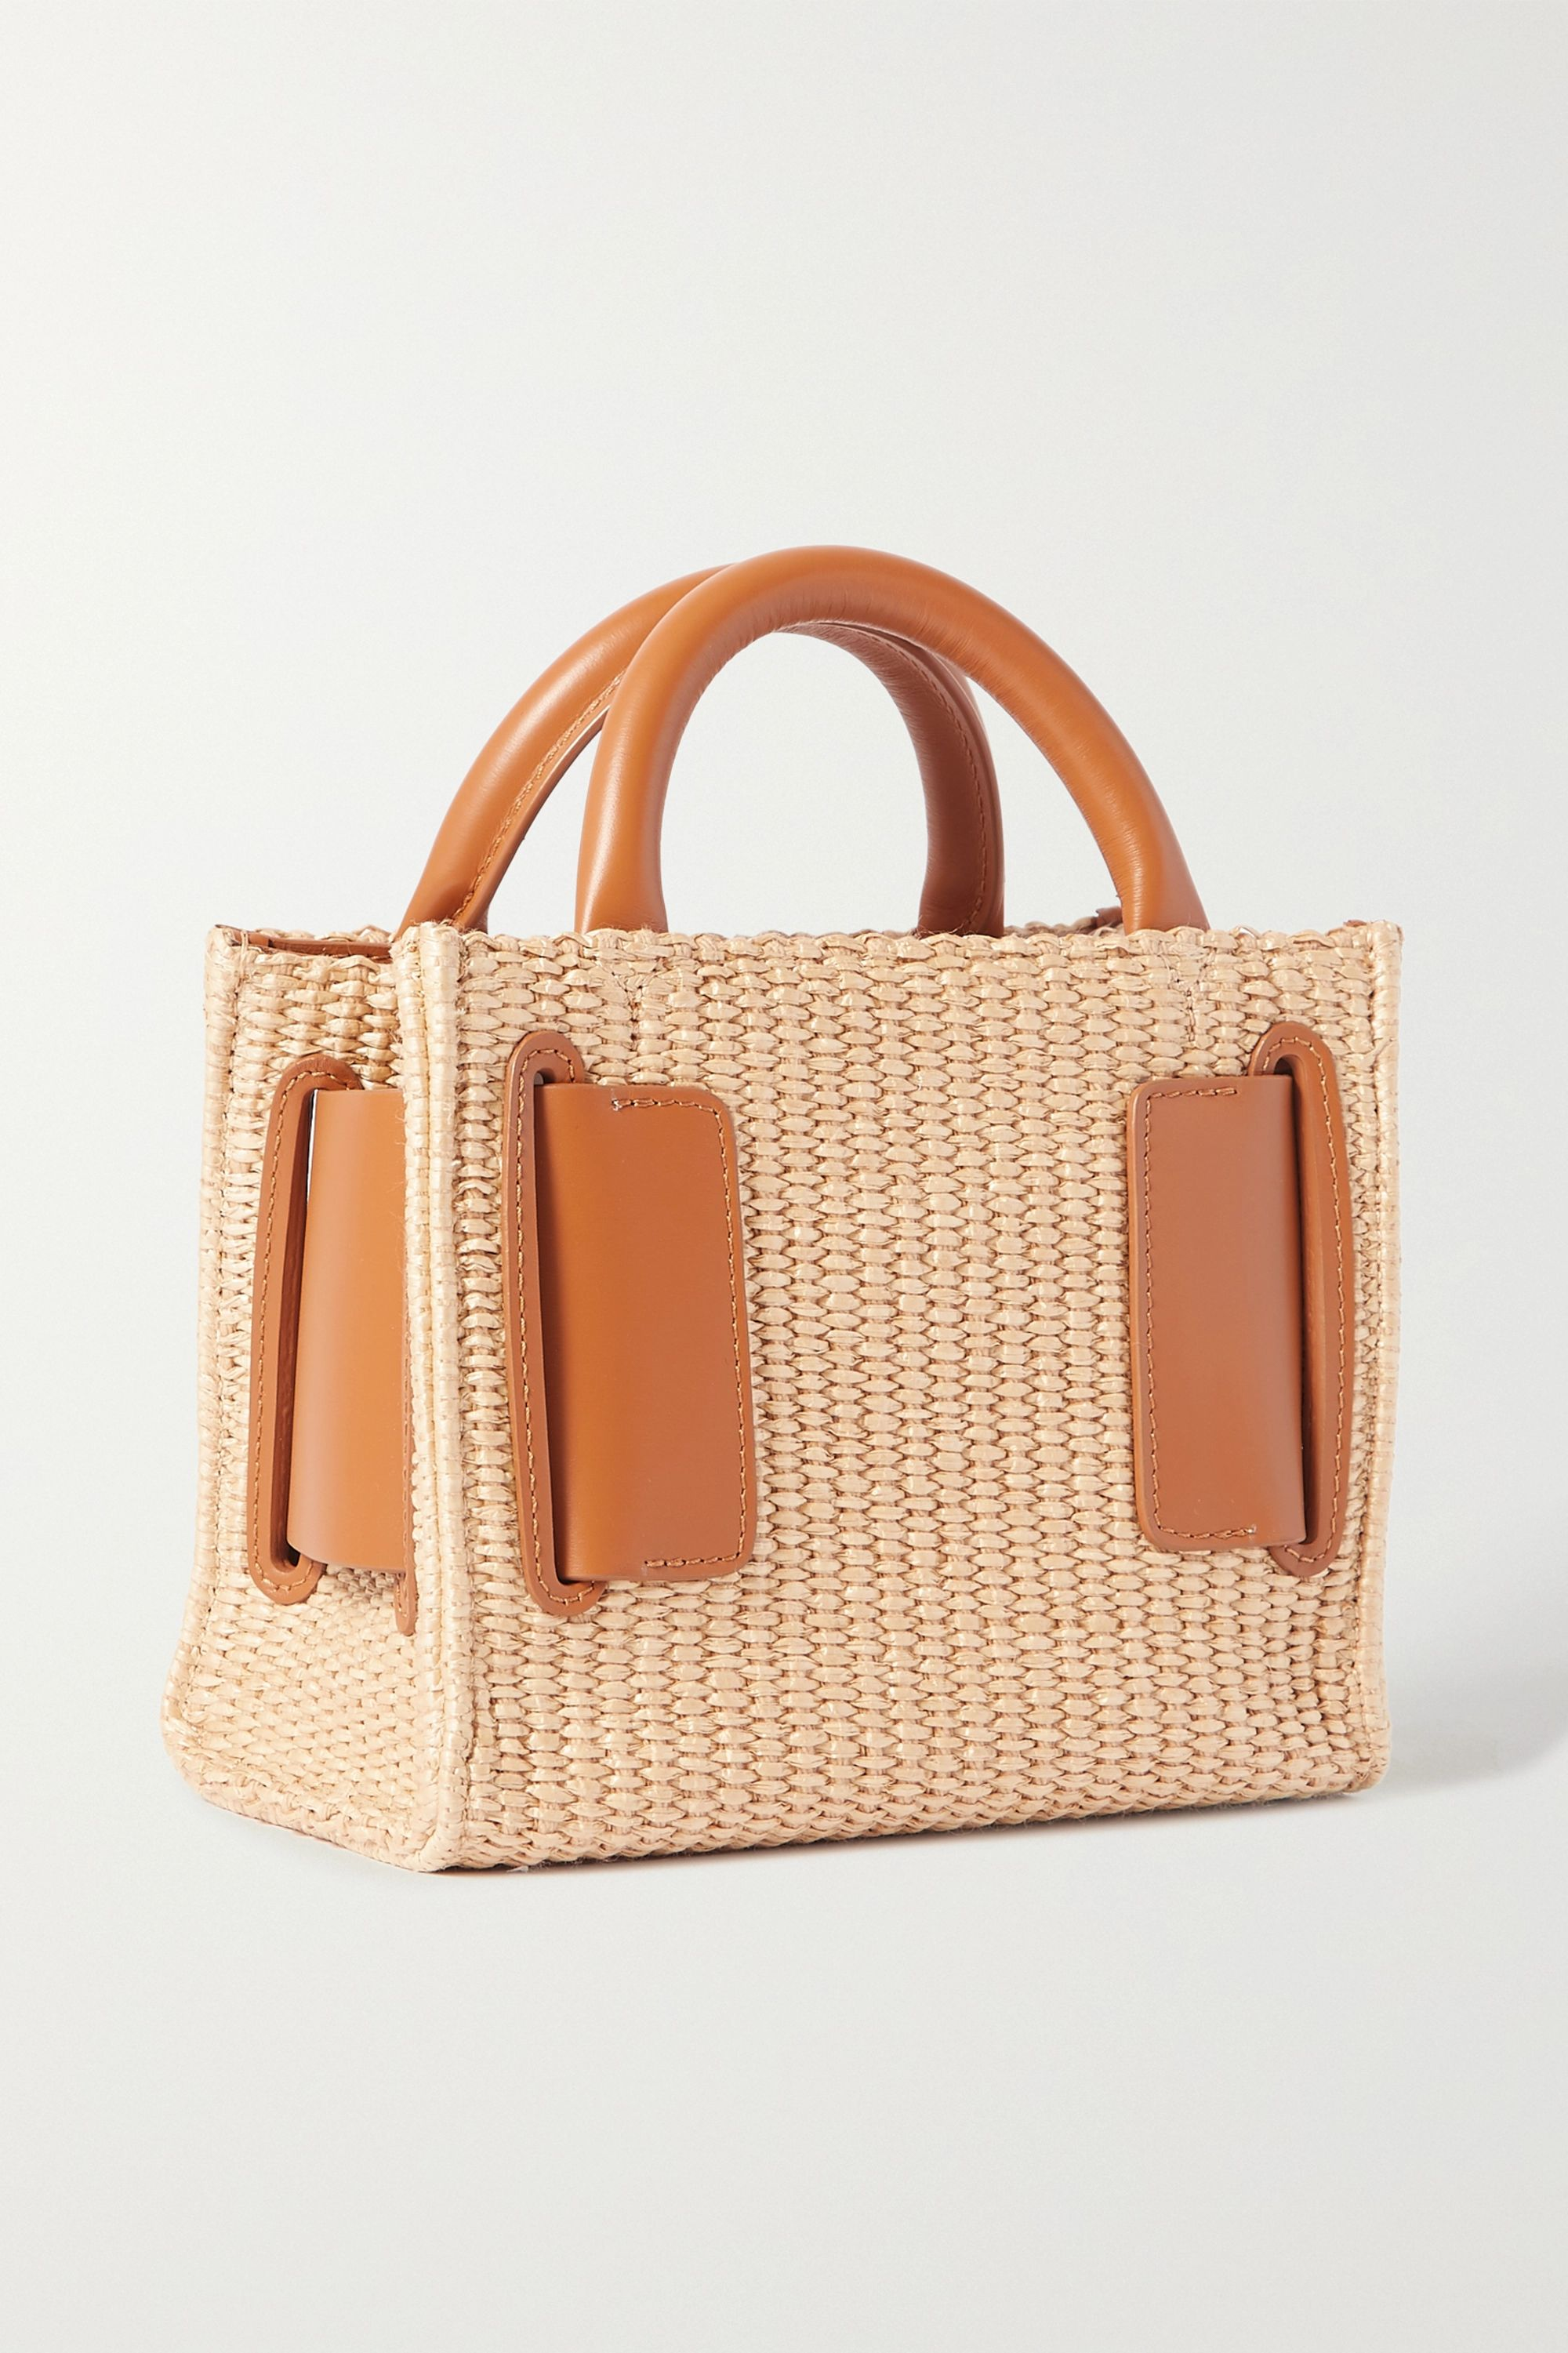 BOYY Bobby 18 buckled leather-trimmed raffia shoulder bag